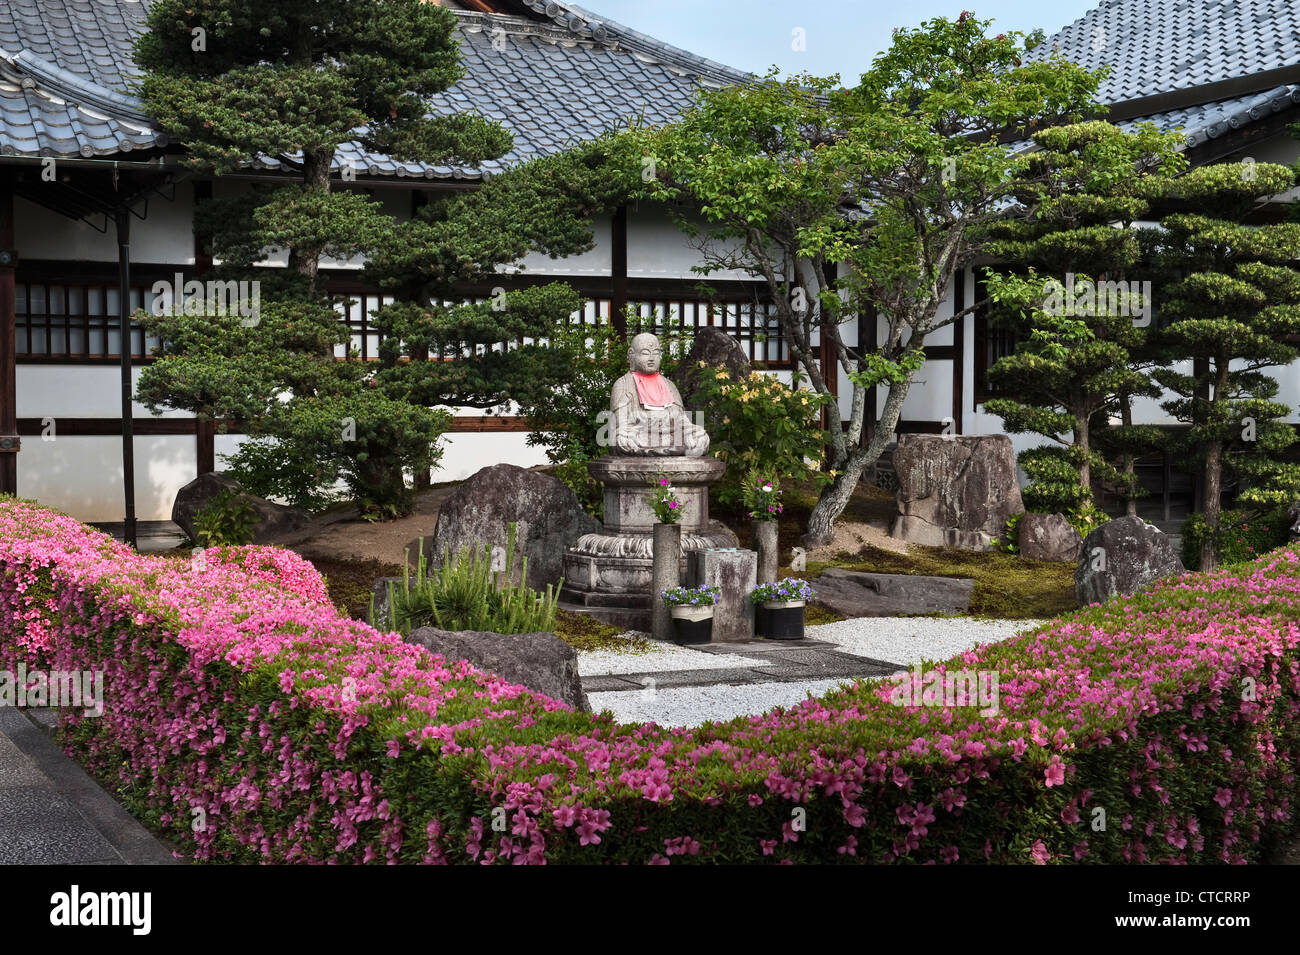 Kyoto, Japan. Clipped azalea (tsutsuji) hedges line the entrance to a sub-temple in the Myoshinji temple complex - Stock Image